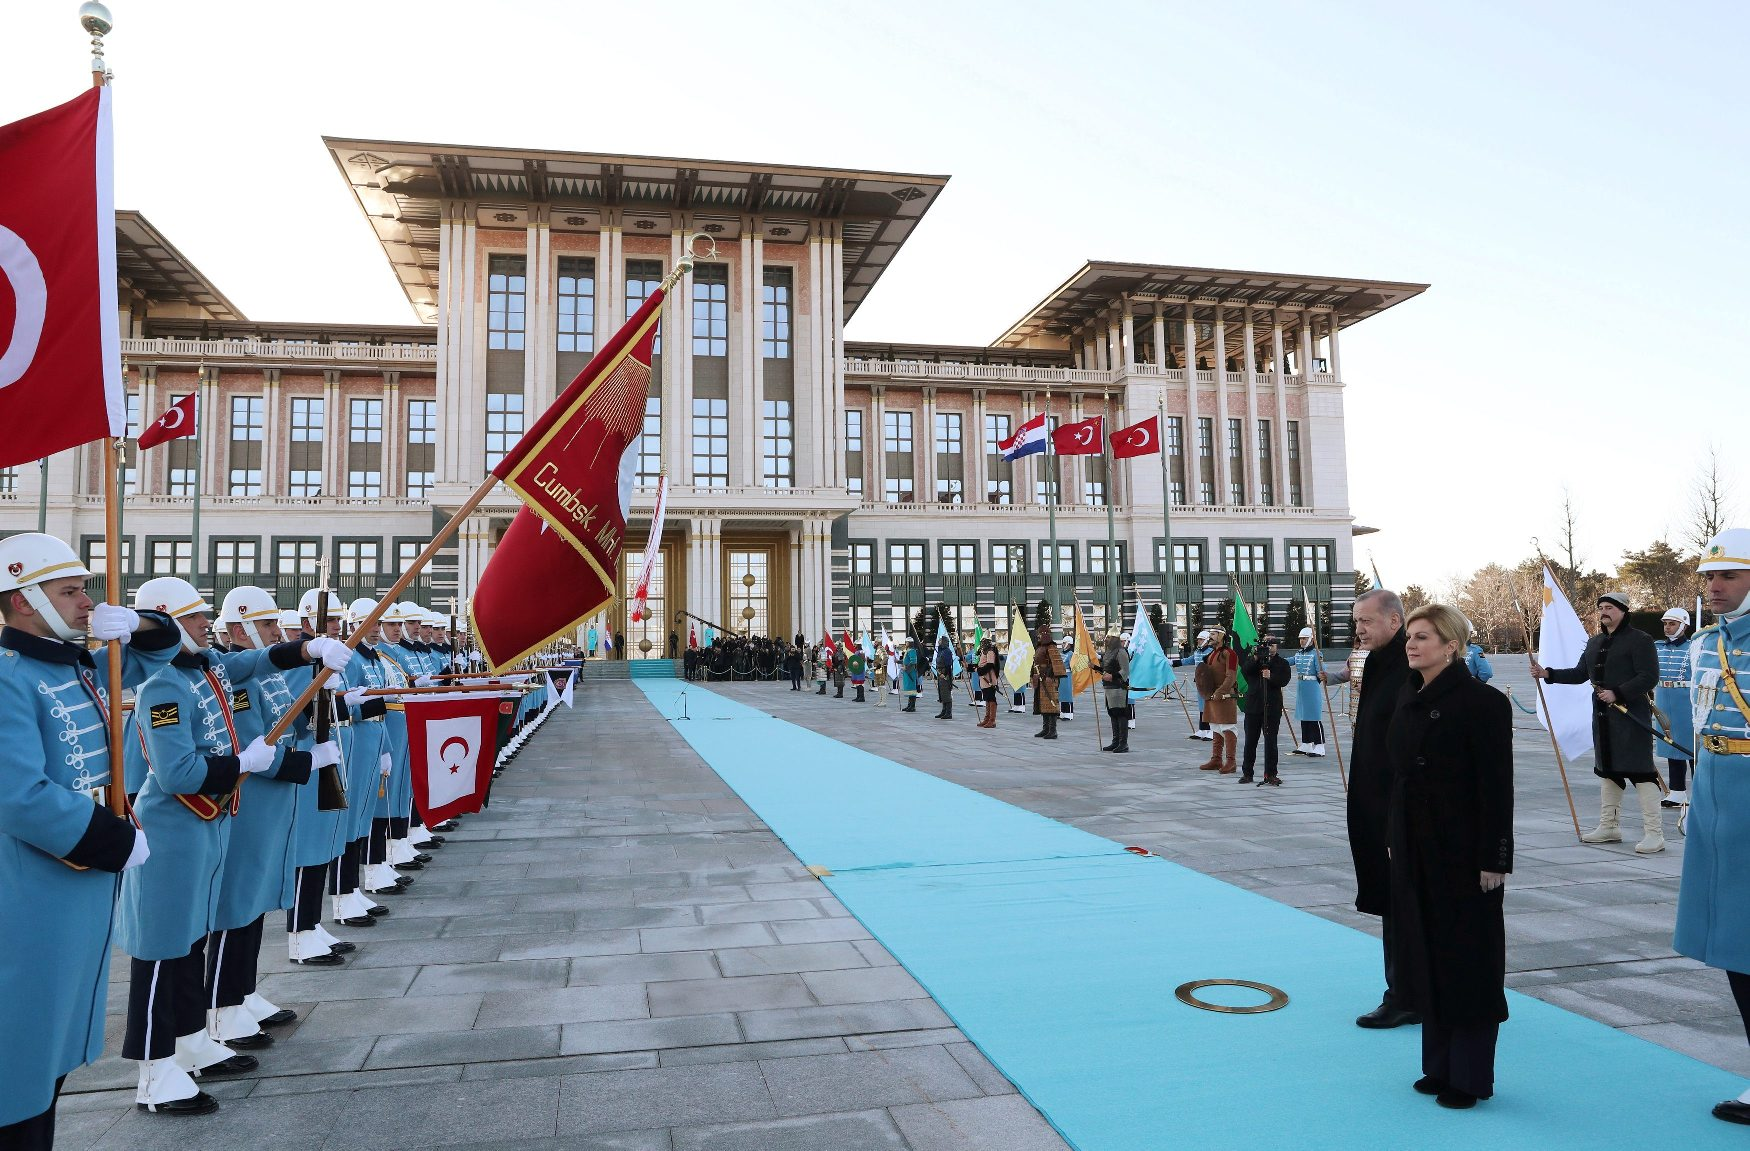 Turkish President Tayyip Erdogan and Croatian President Kolinda Grabar-Kitarovic review a guard of honour during a welcoming ceremony at the Presidential Palace in Ankara, Turkey January 16, 2019. Kayhan Ozer/Presidential Press Office/Handout via REUTERS ATTENTION EDITORS - THIS PICTURE WAS PROVIDED BY A THIRD PARTY. NO RESALES. NO ARCHIVE.